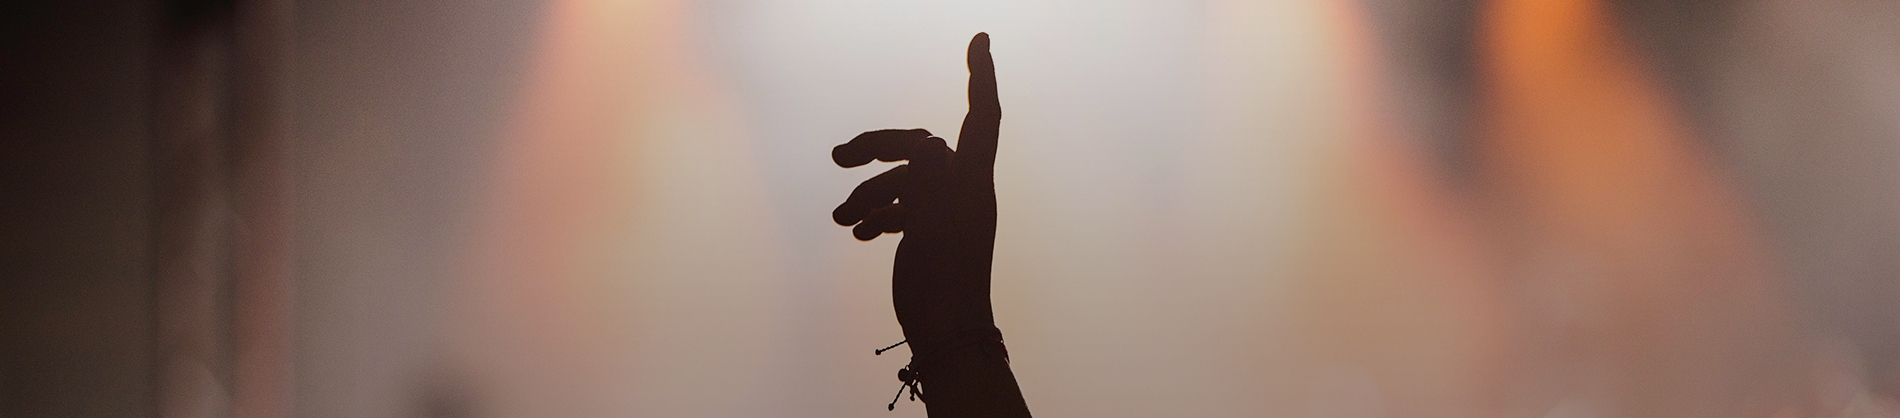 A women pointing in the air